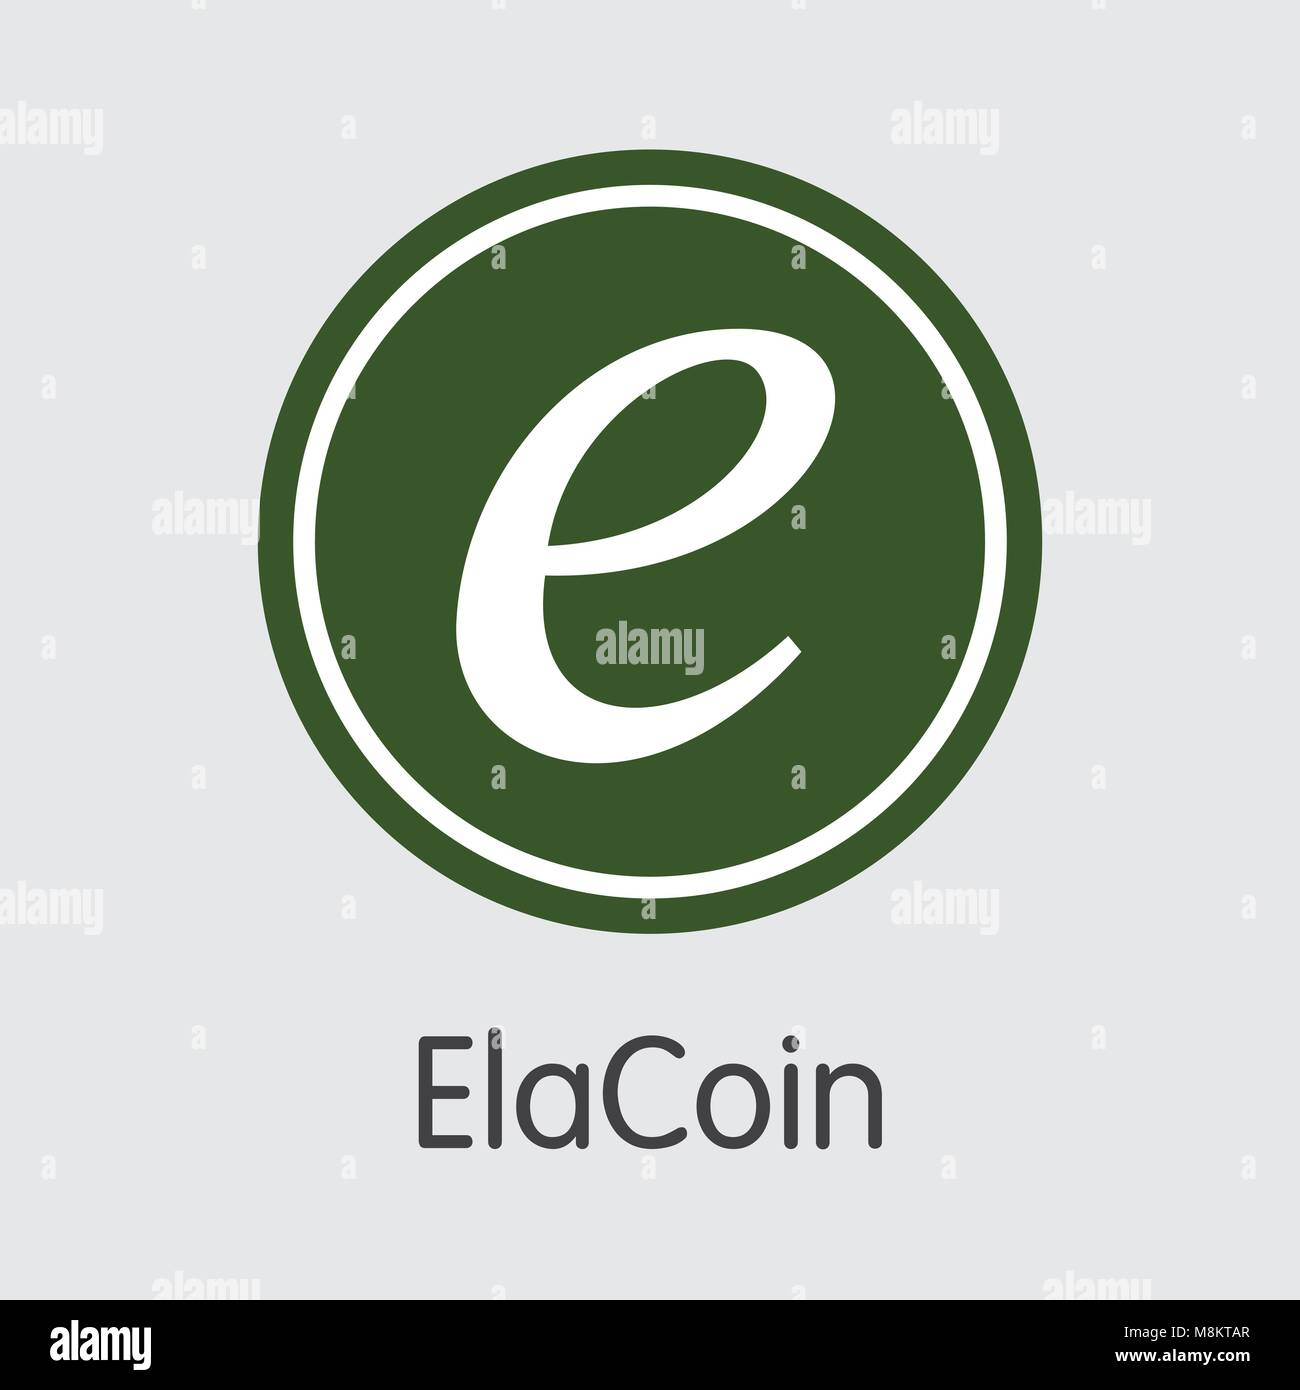 Elacoin Cryptographic Currency. Vector ELC Coin Pictogram. - Stock Vector